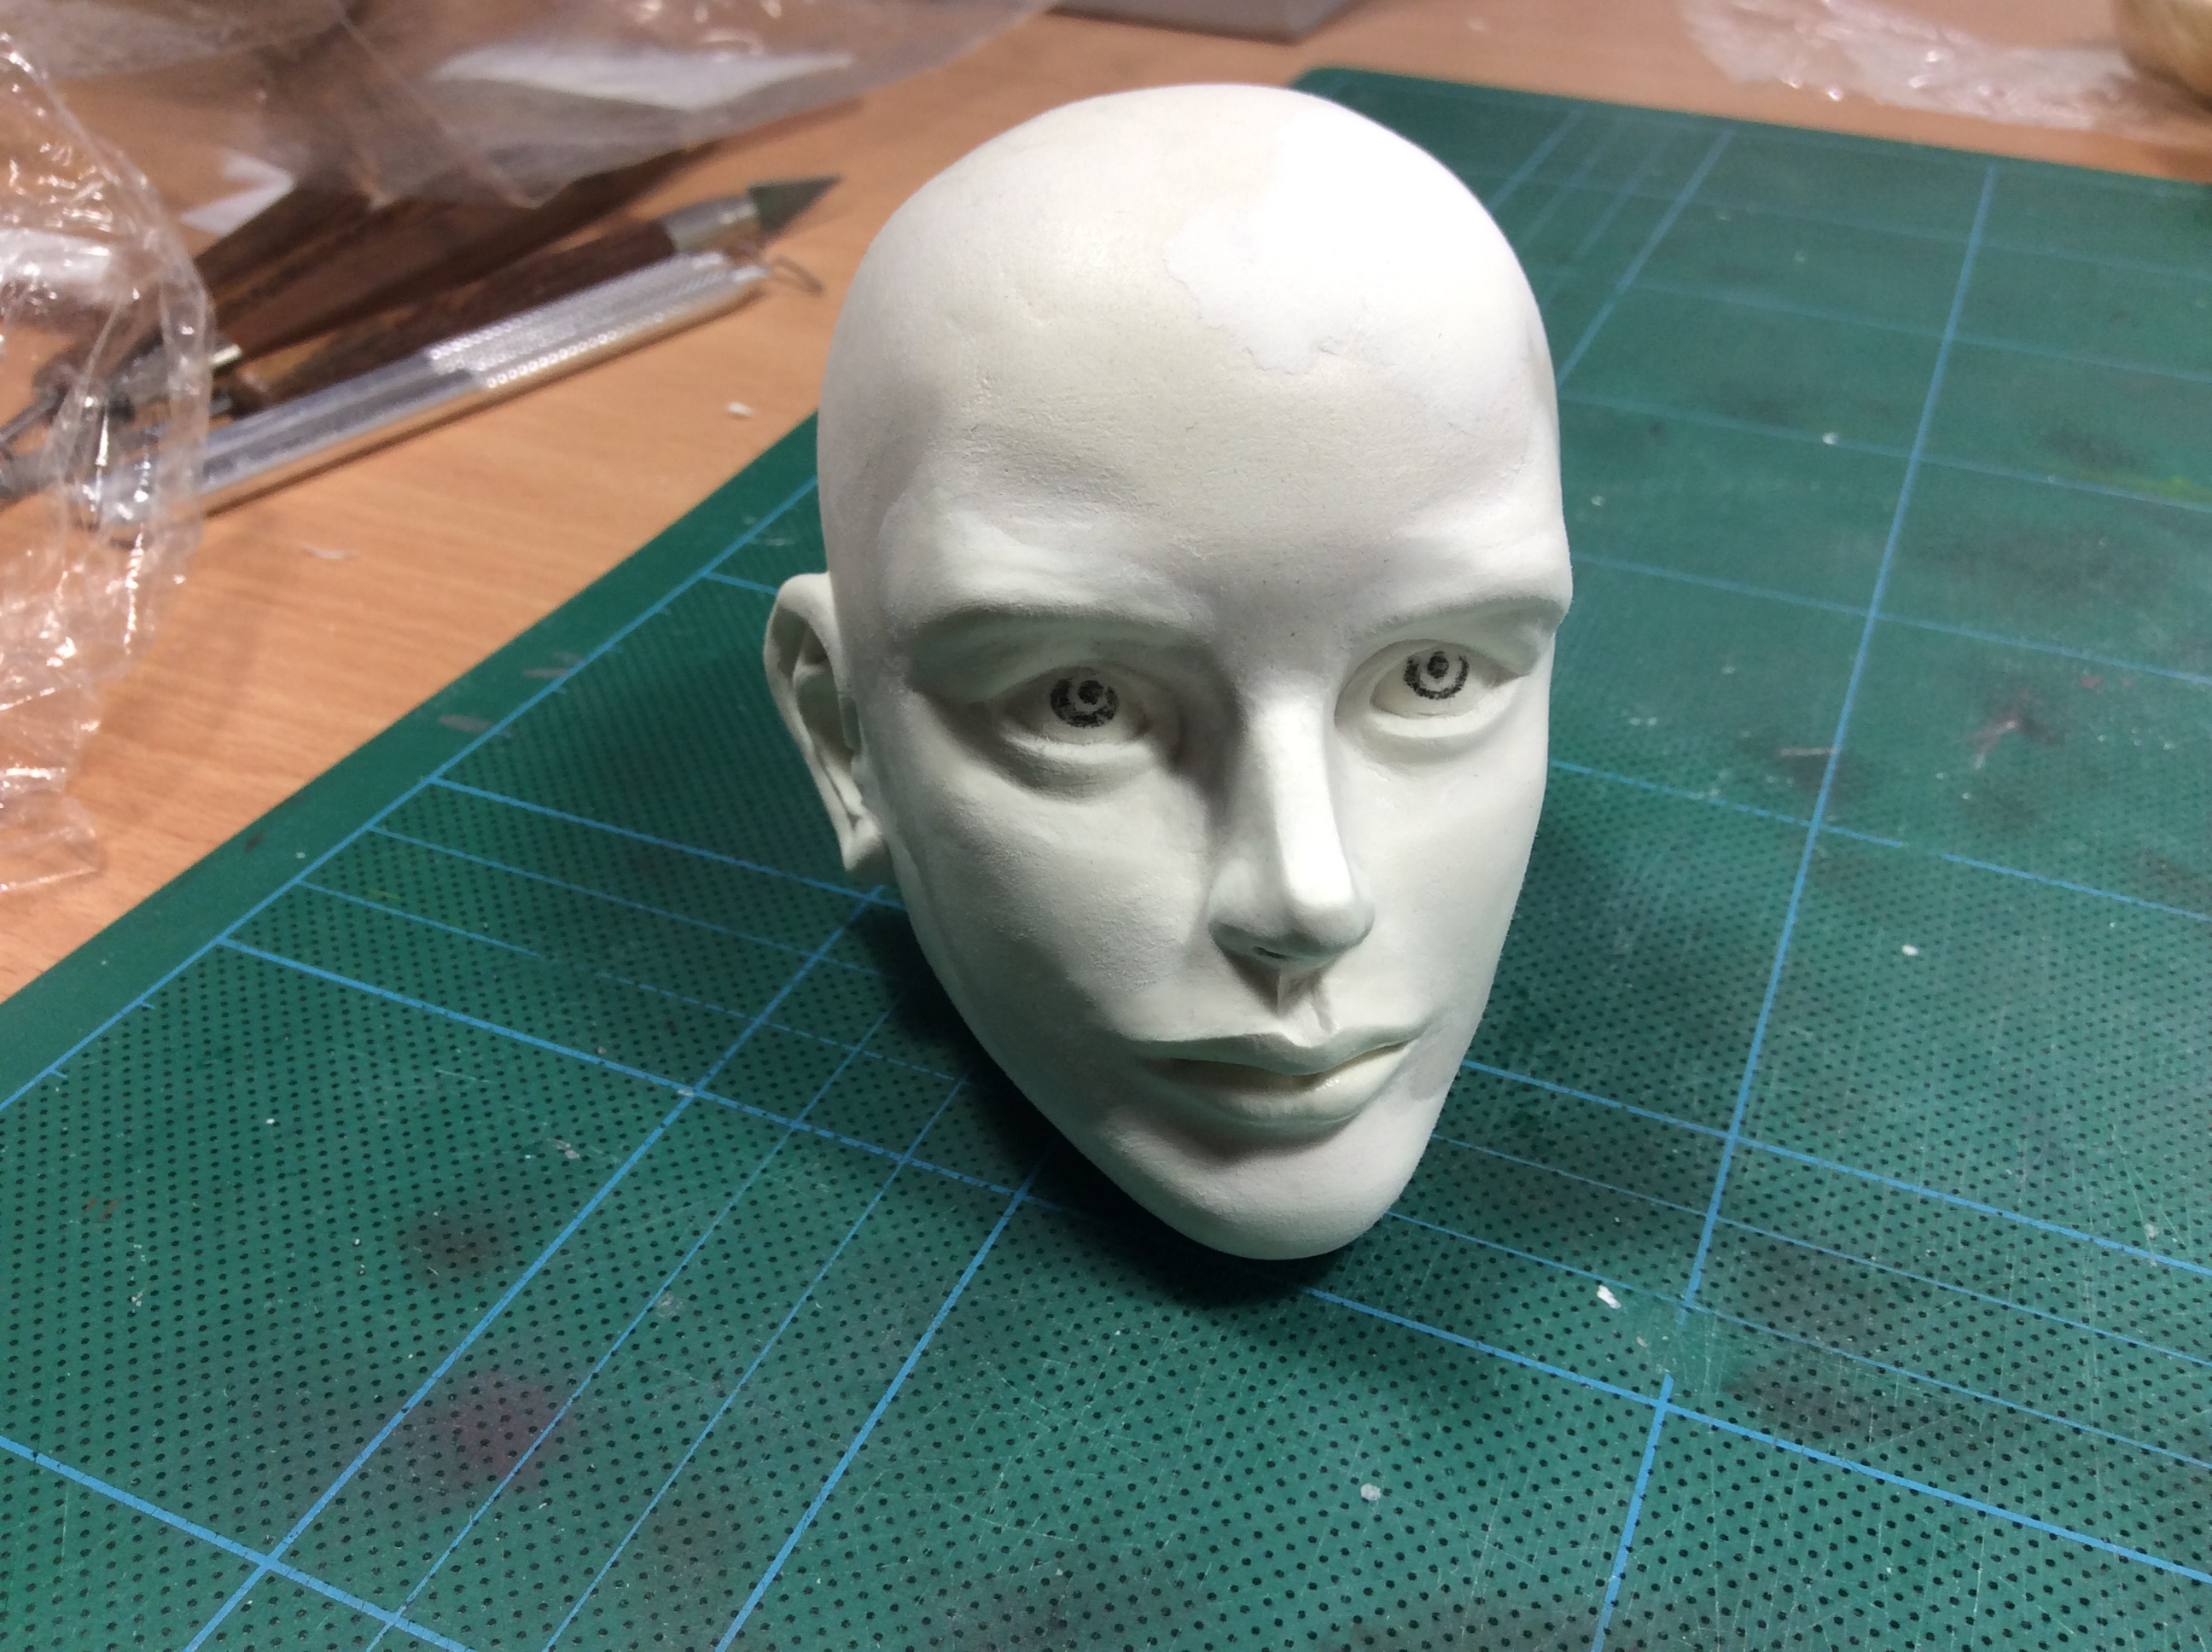 jemse---my-first-doll-head-making-progress-diary-part-4_32048496730_o